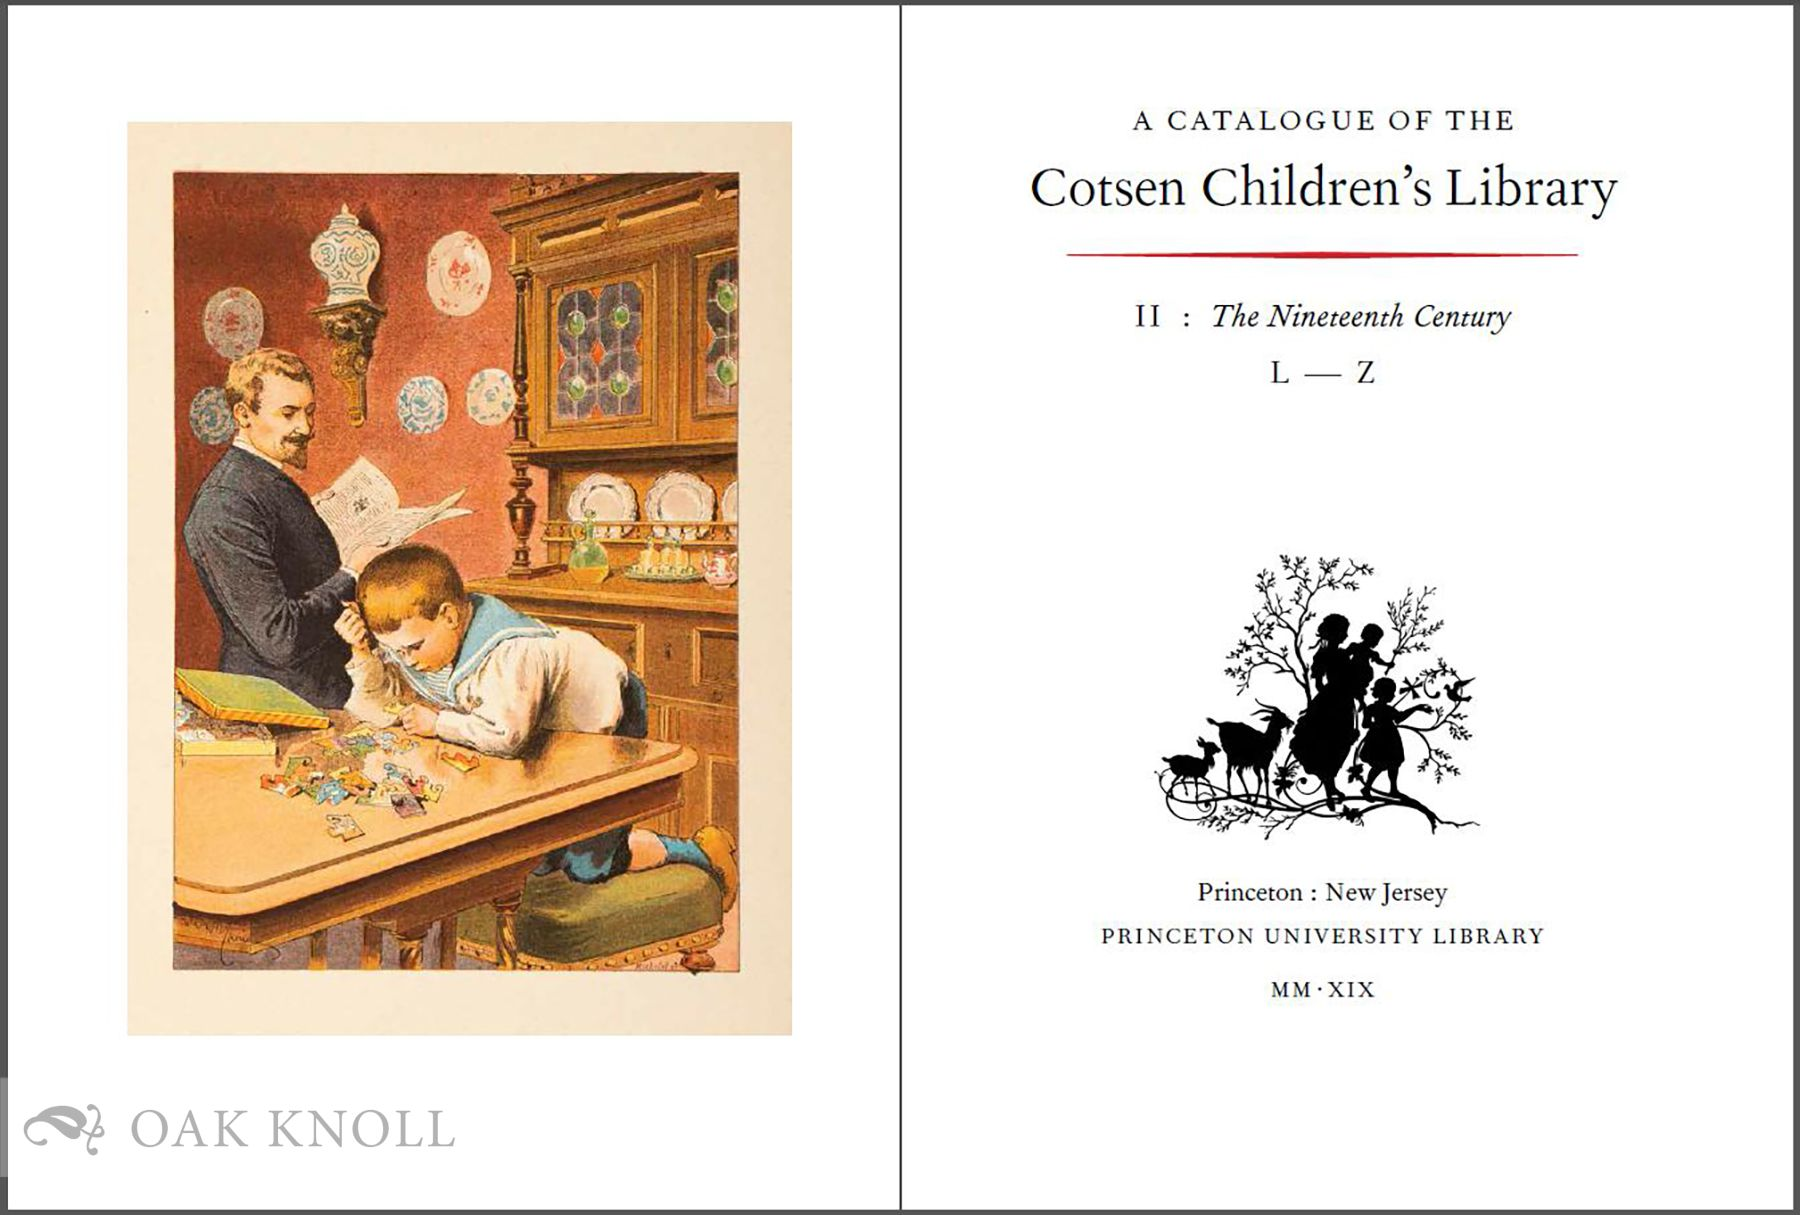 CATALOGUE OF THE COTSEN CHILDREN'S LIBRARY: THE TWENTIETH CENTURY VOLS  I &  II AND THE NINETEENTH CENTURY VOLS I & II on Oak Knoll